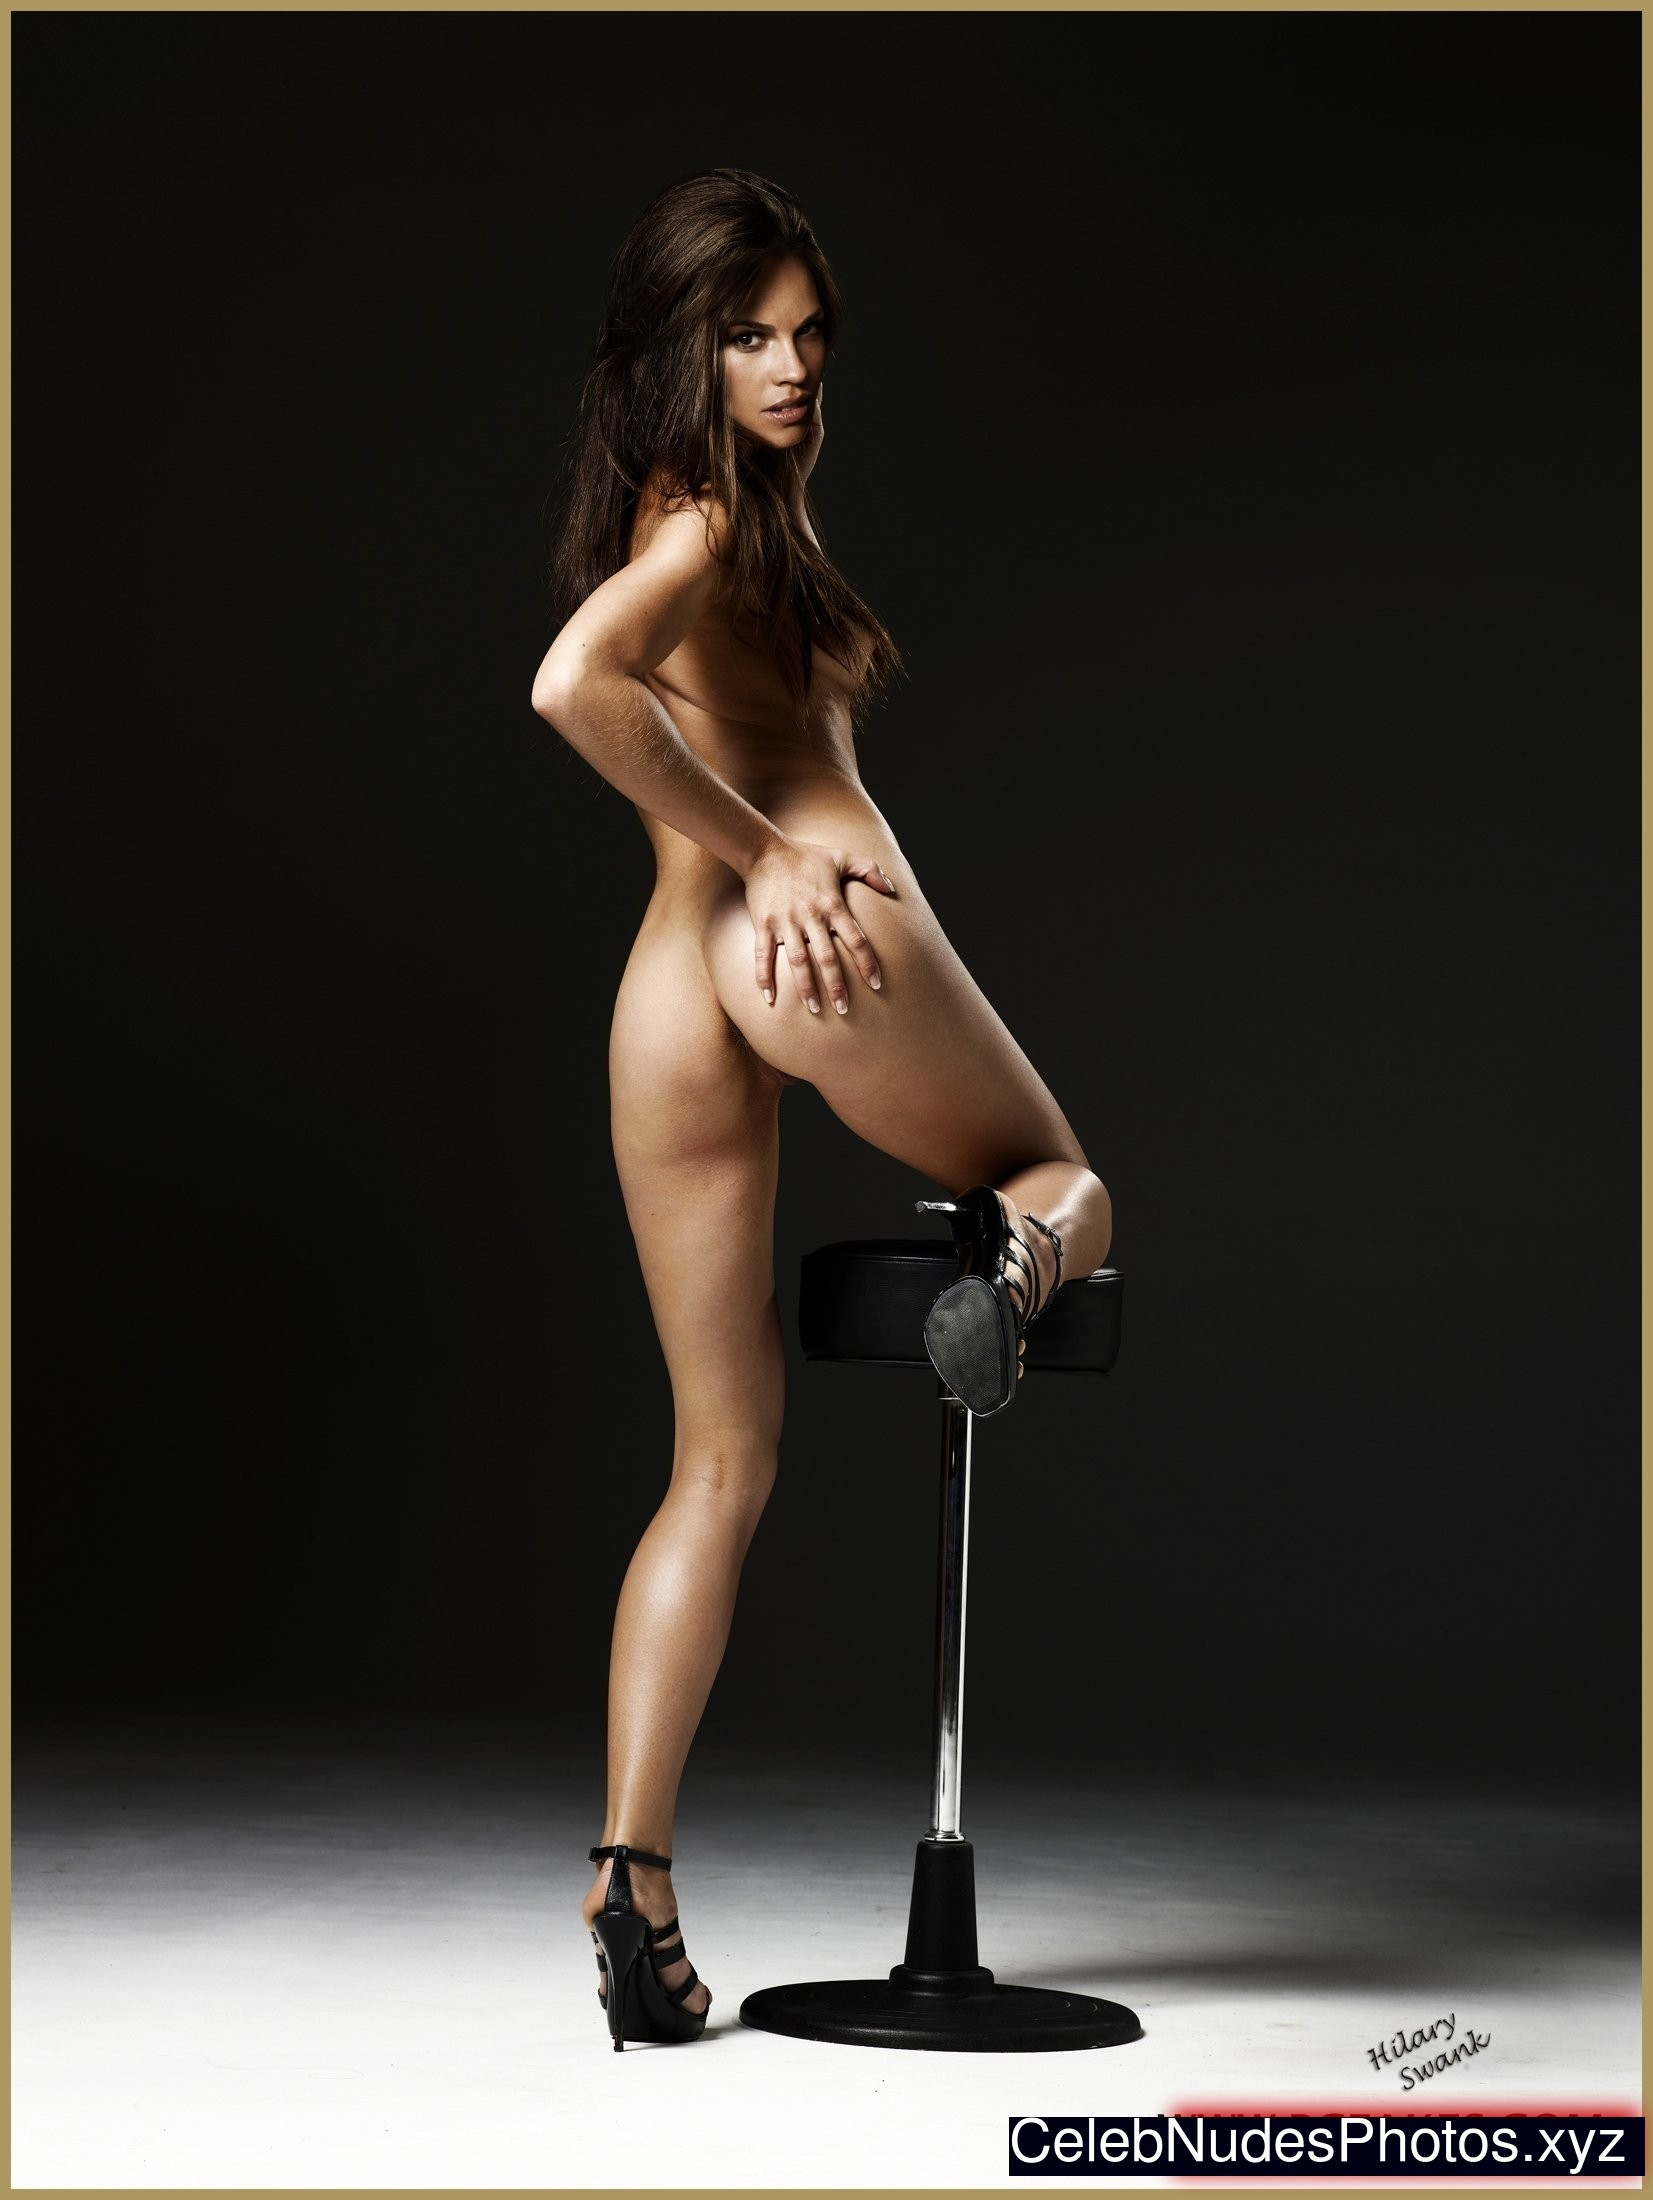 from Ramon hilary swank hot and nude